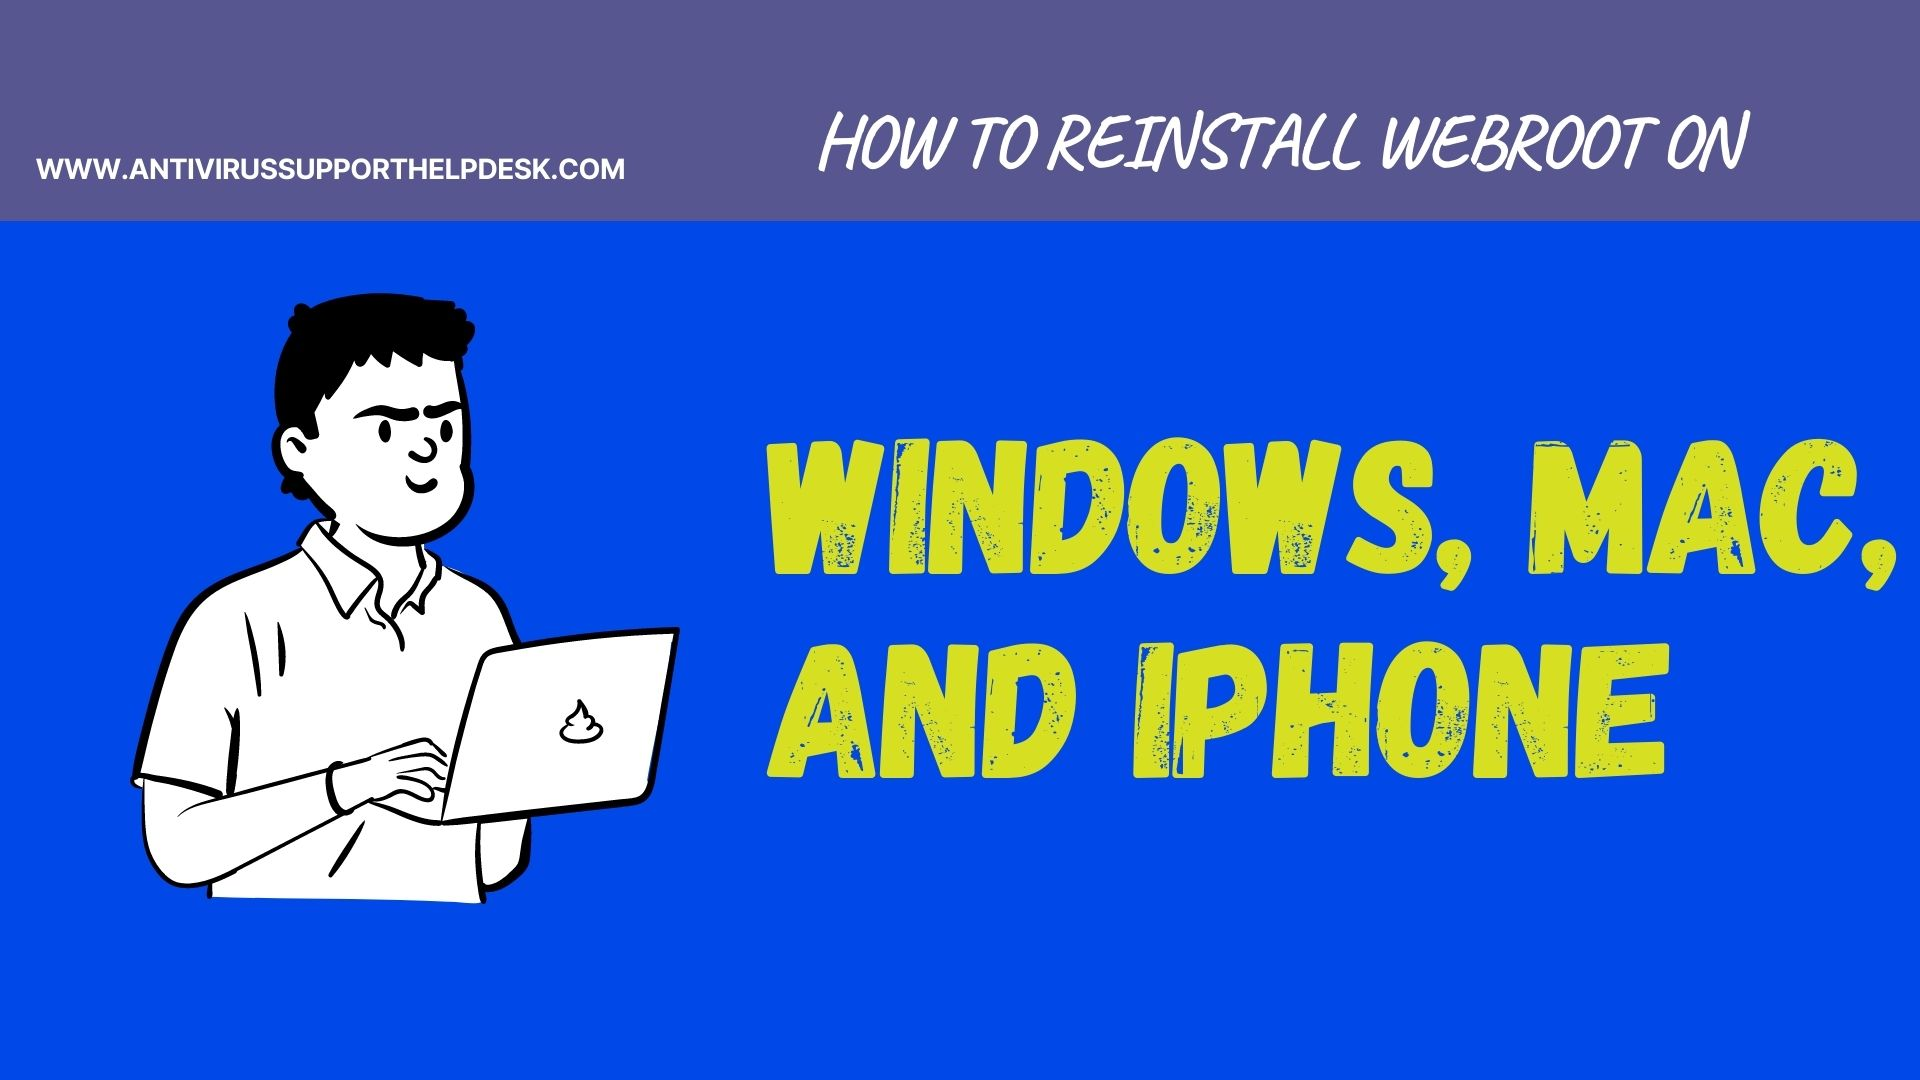 HOW TO REINSTALL WEBROOT ON WINDOWS, MAC, AND IPHONE